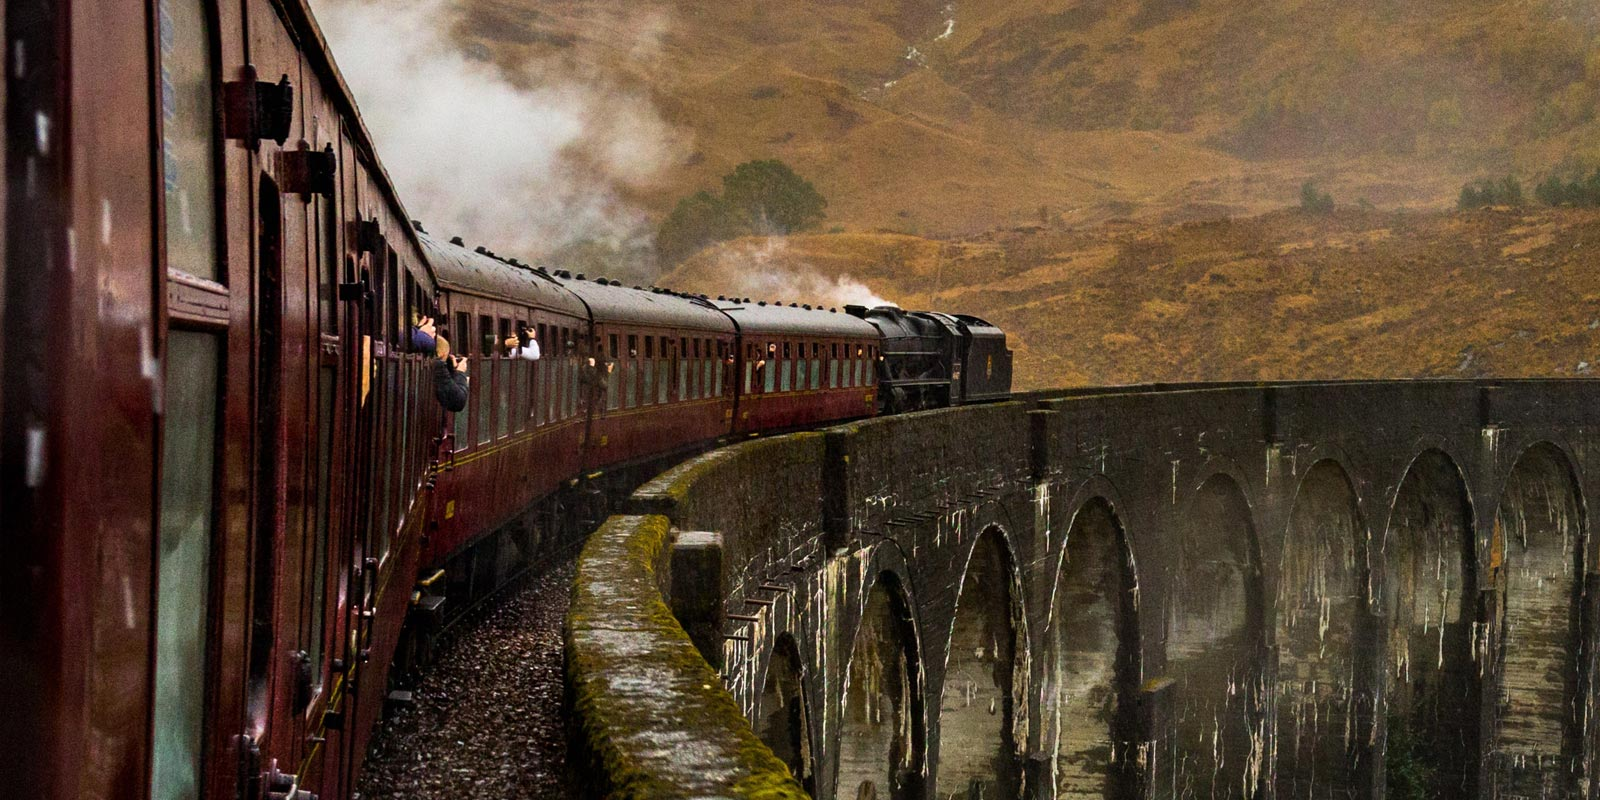 How Much Does It Cost To Go On The Orient Express